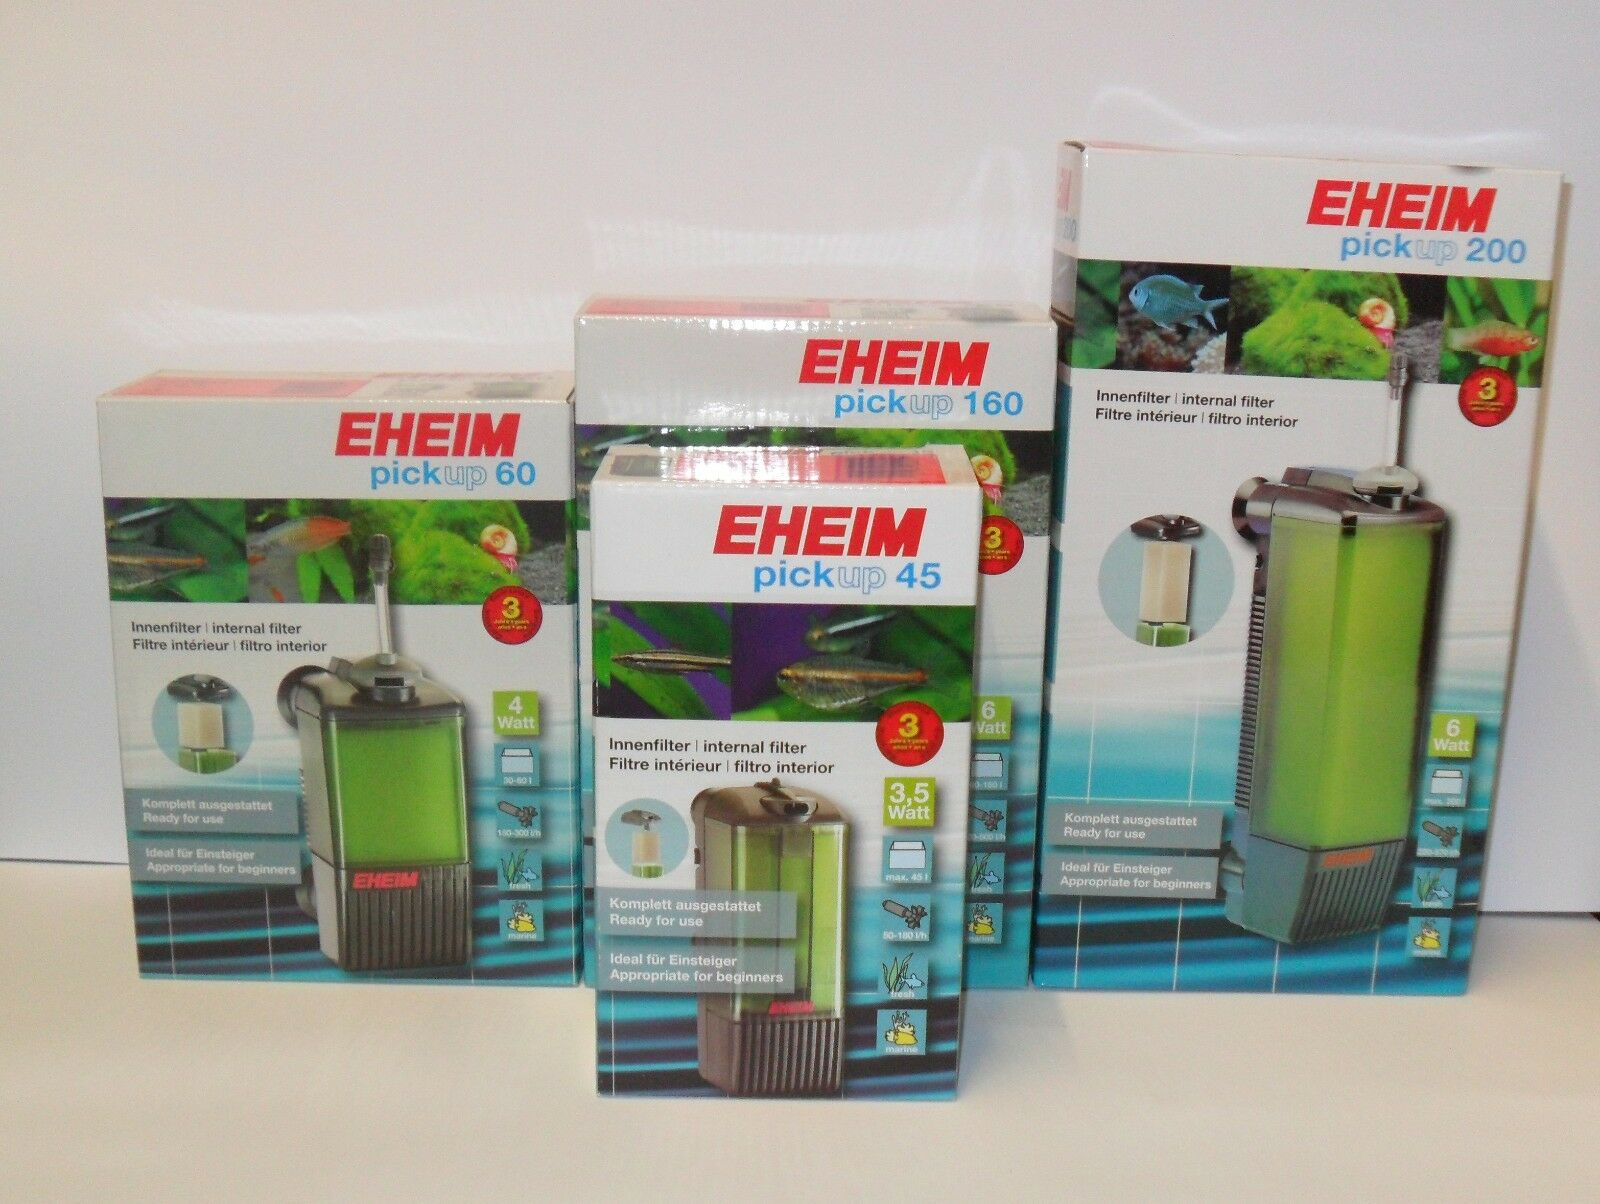 EHEIM PICKUP 45 60 160 200 INTERNAL AQUARIUM FILTER. Freshwater Fish